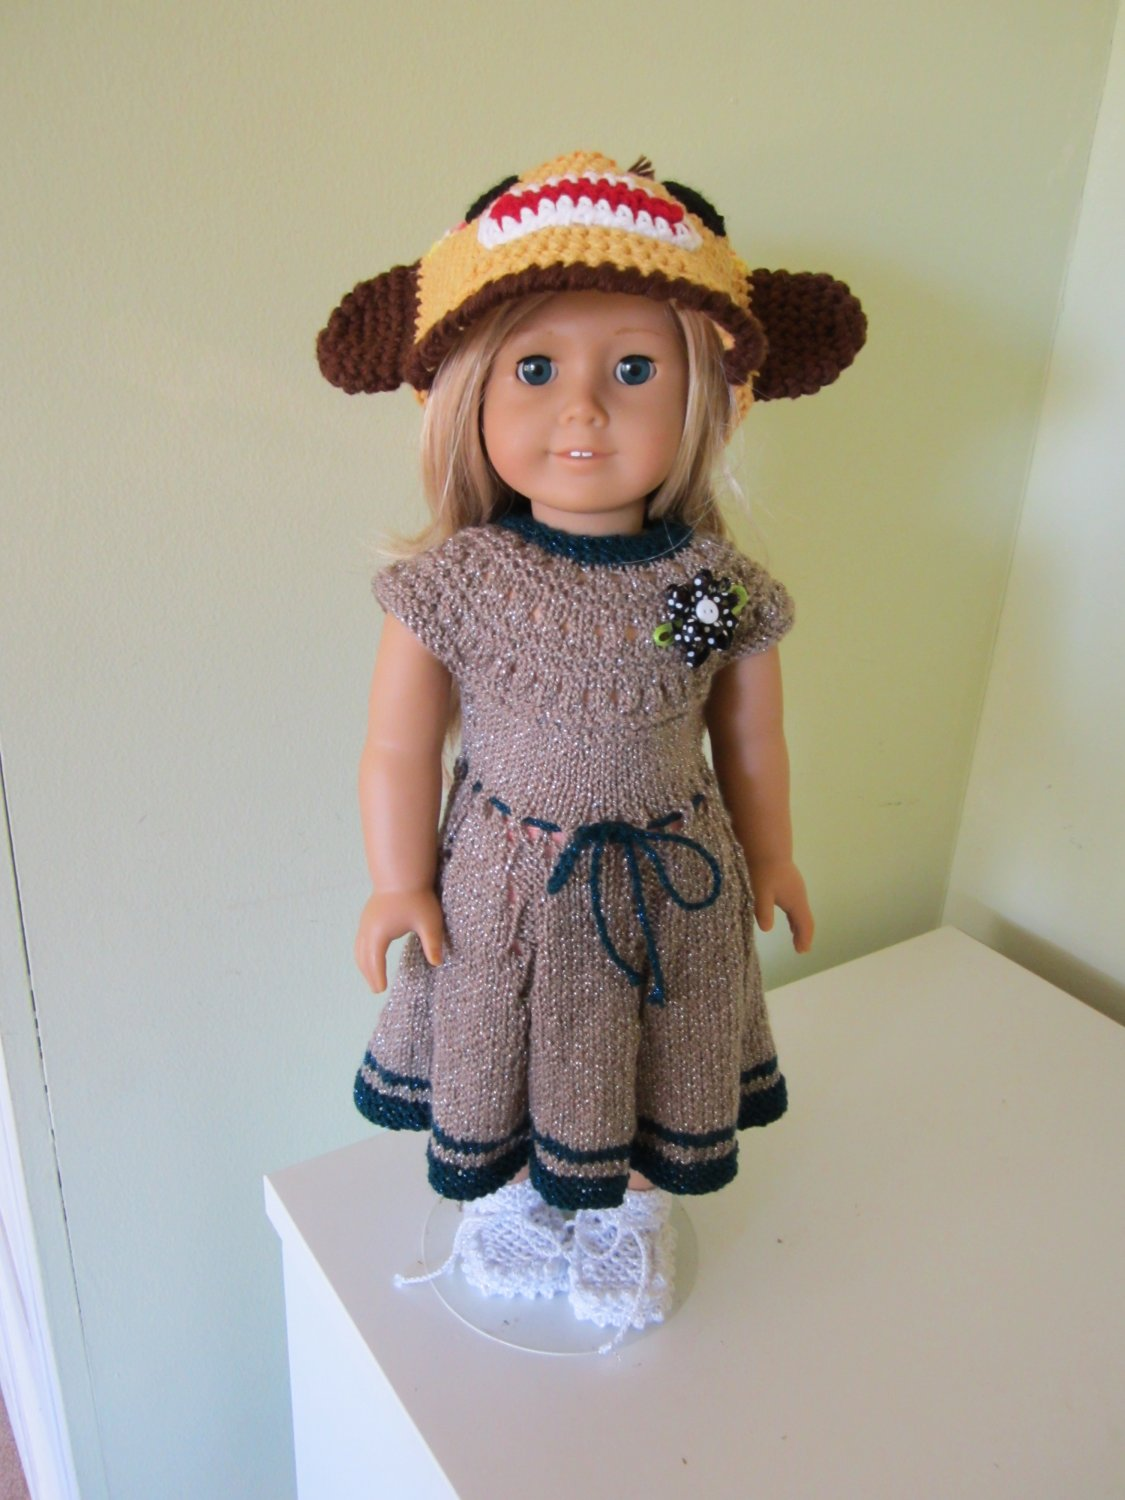 Crochet  monkey hat for American girl doll and Waldorf doll